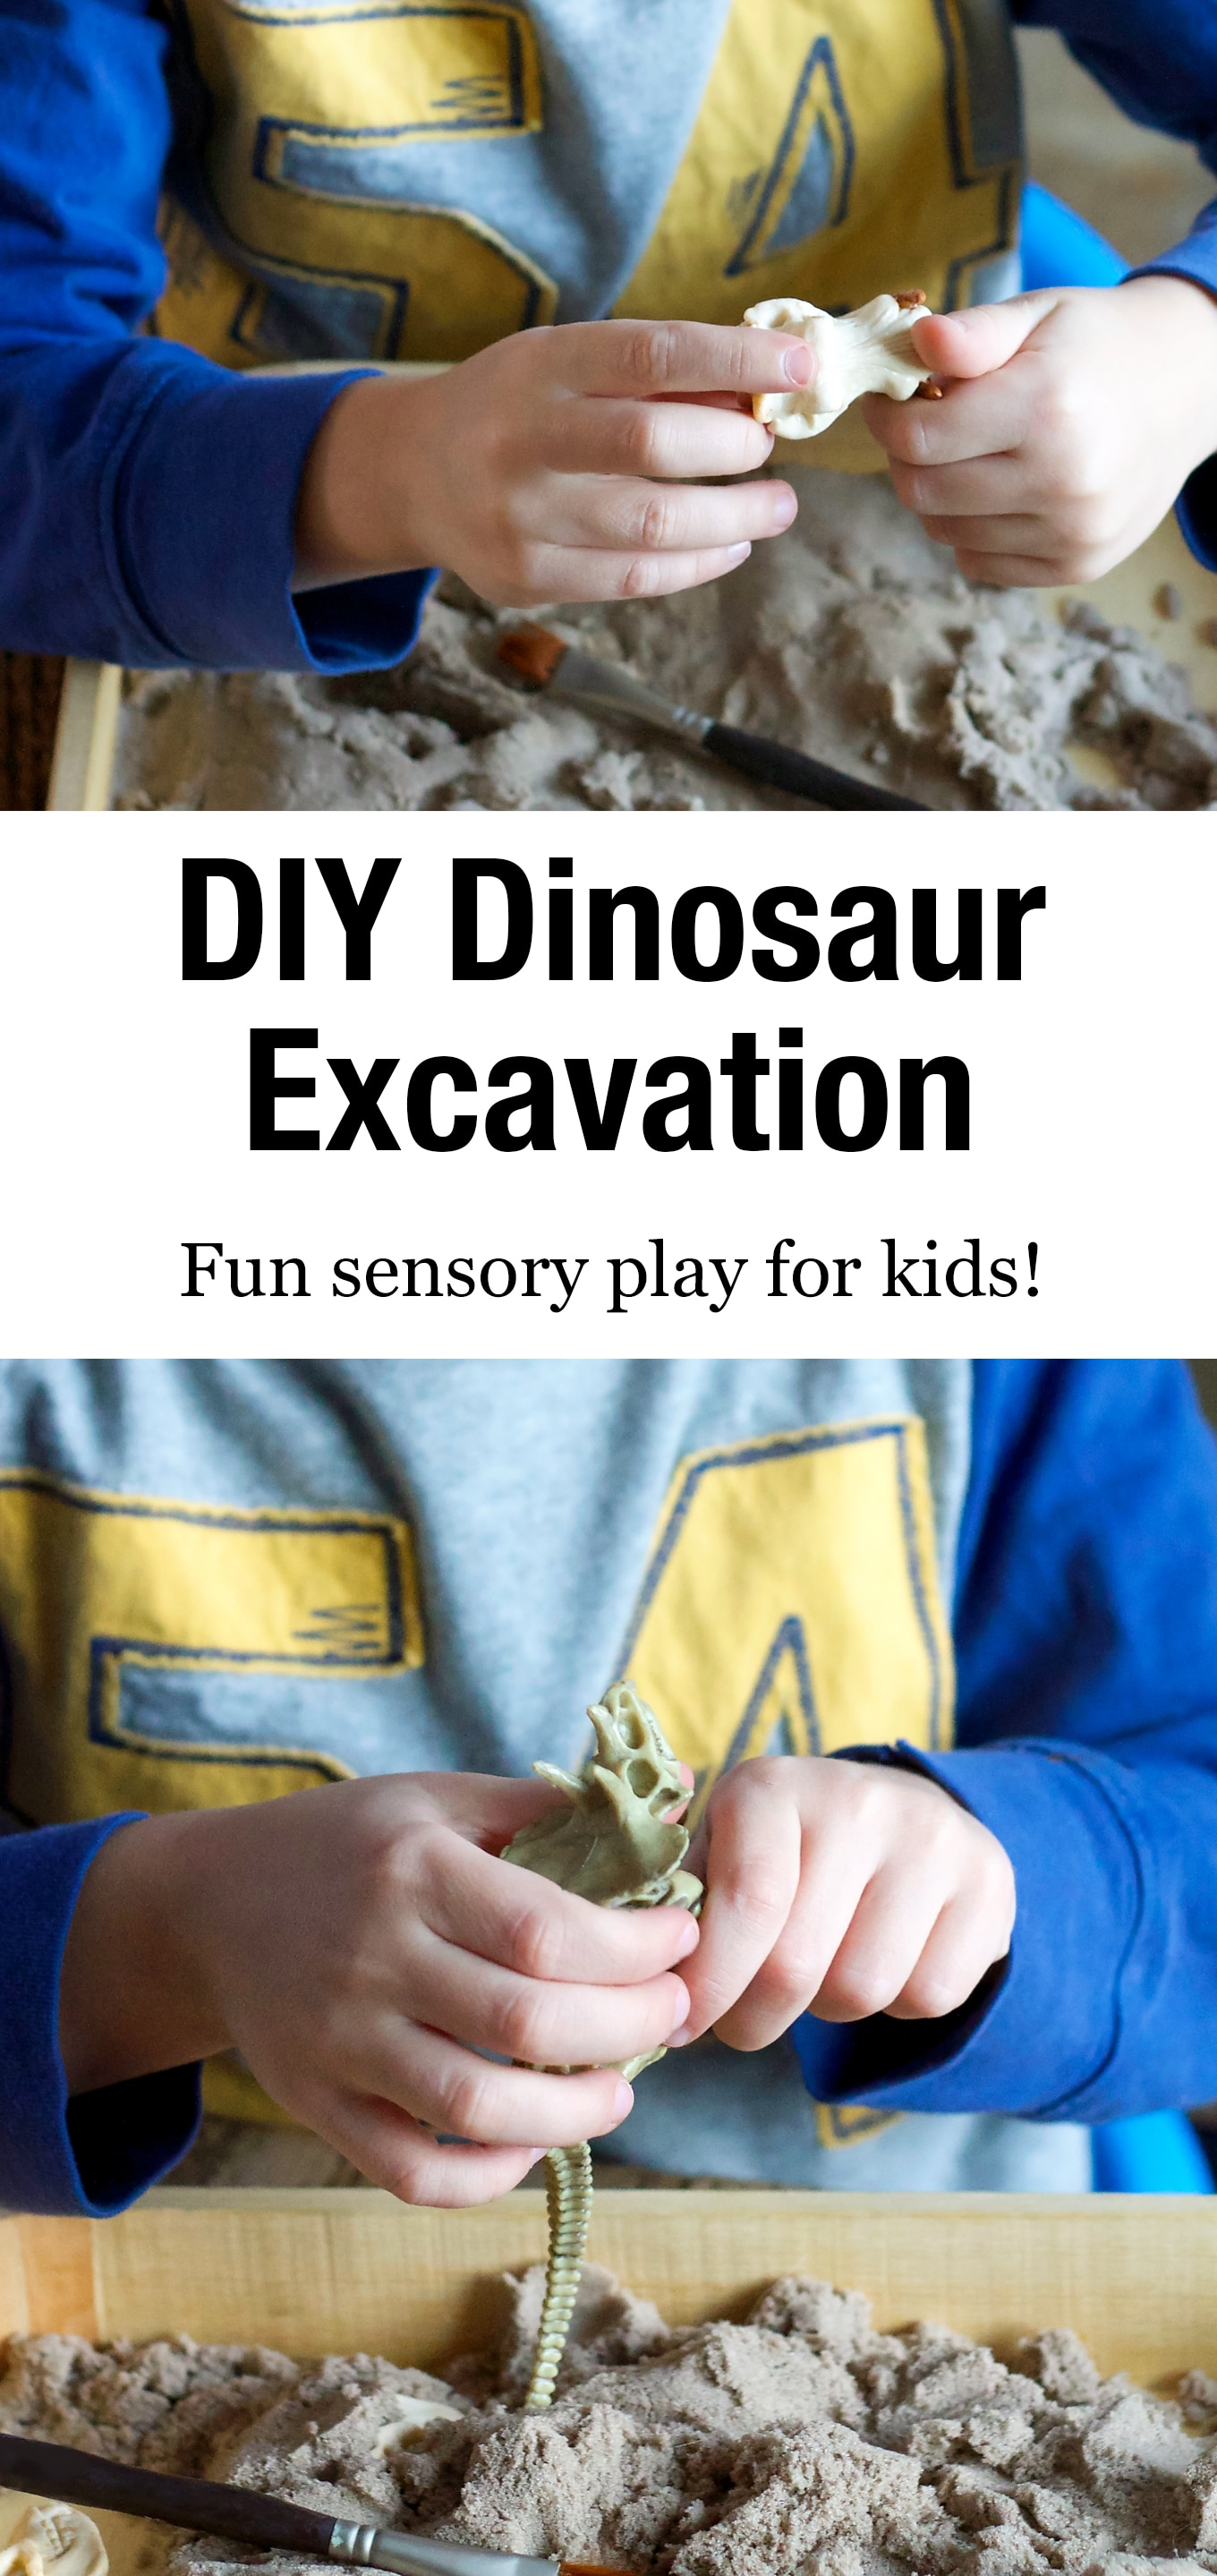 Learn how to make a DIY Dinosaur Dig sensory bin for your pint-sized paleontologist! It's an easy and fun way for kids to learn about dinosaurs. #dinosaurdig #sensorybin #preschool #kidsactivities via @firefliesandmudpies